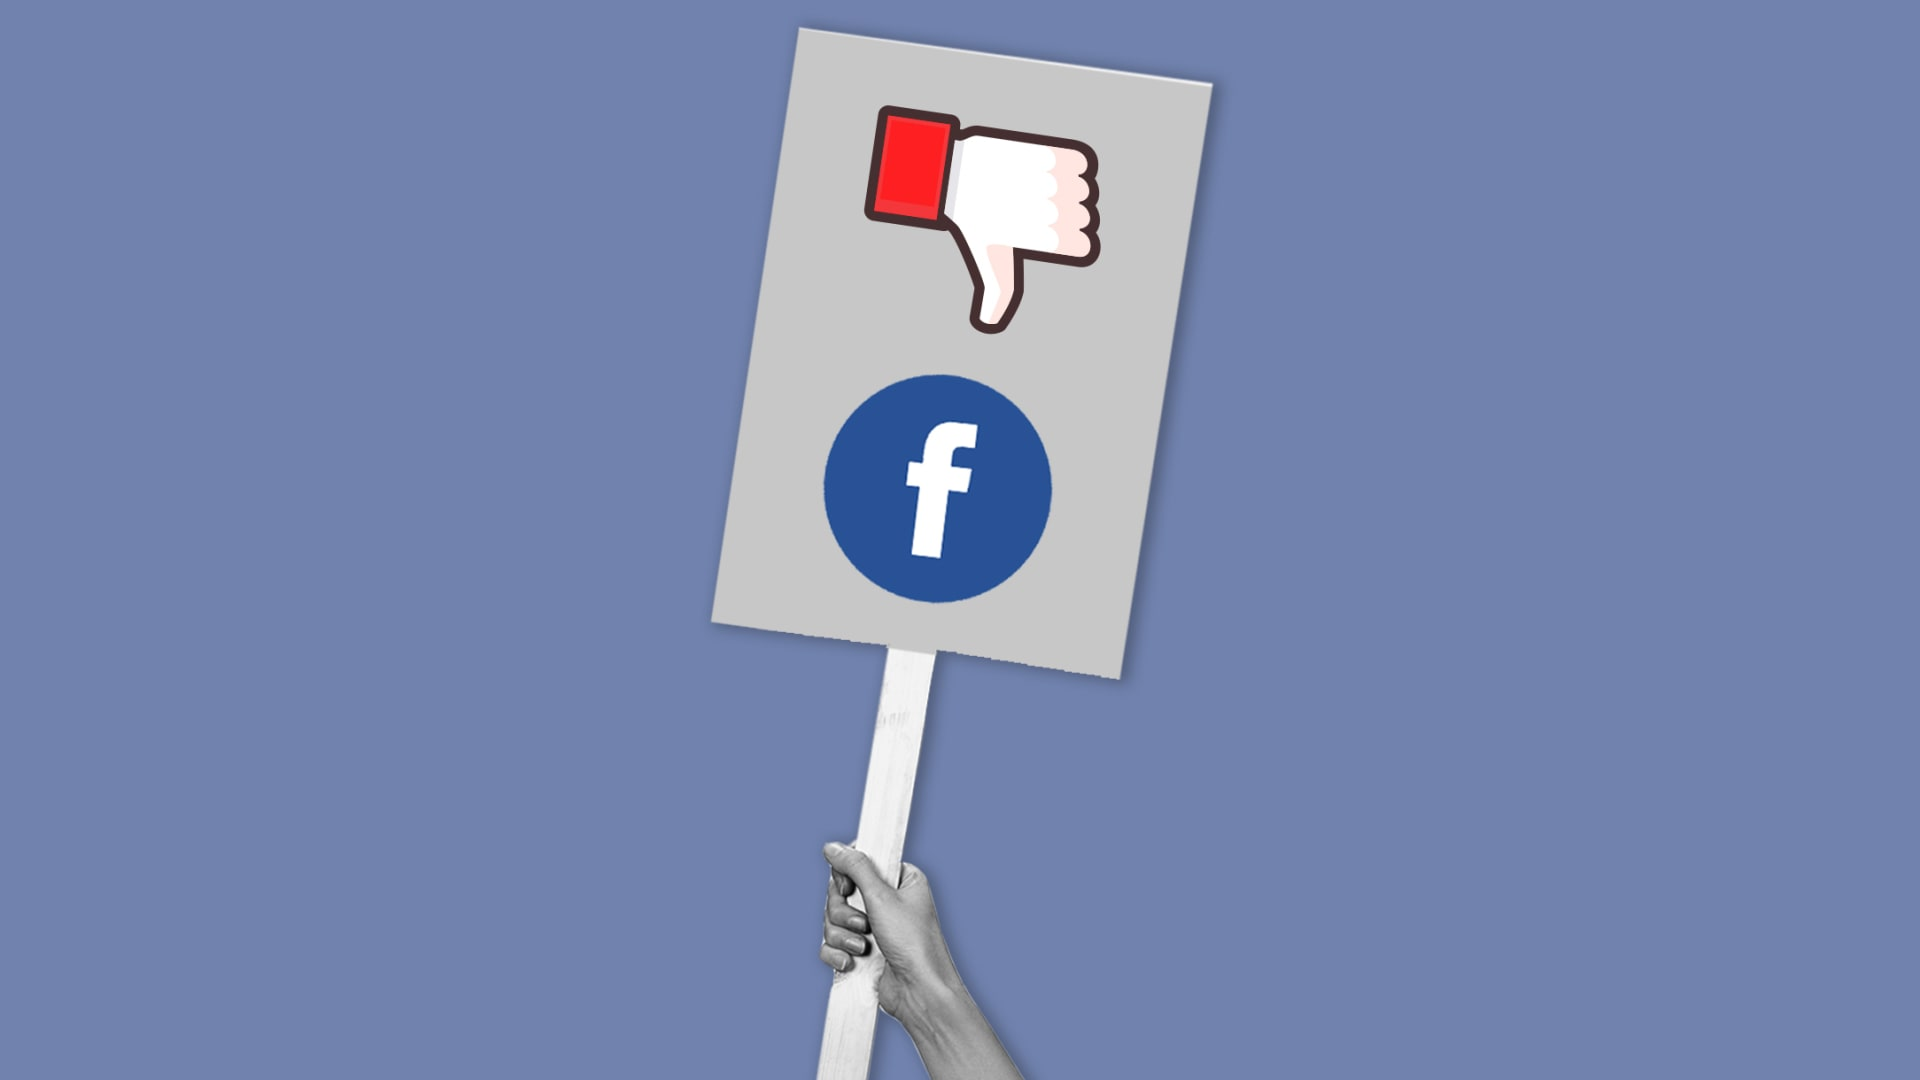 This Facebook Boycott Is Different. Why Your Business Should Pay Attention